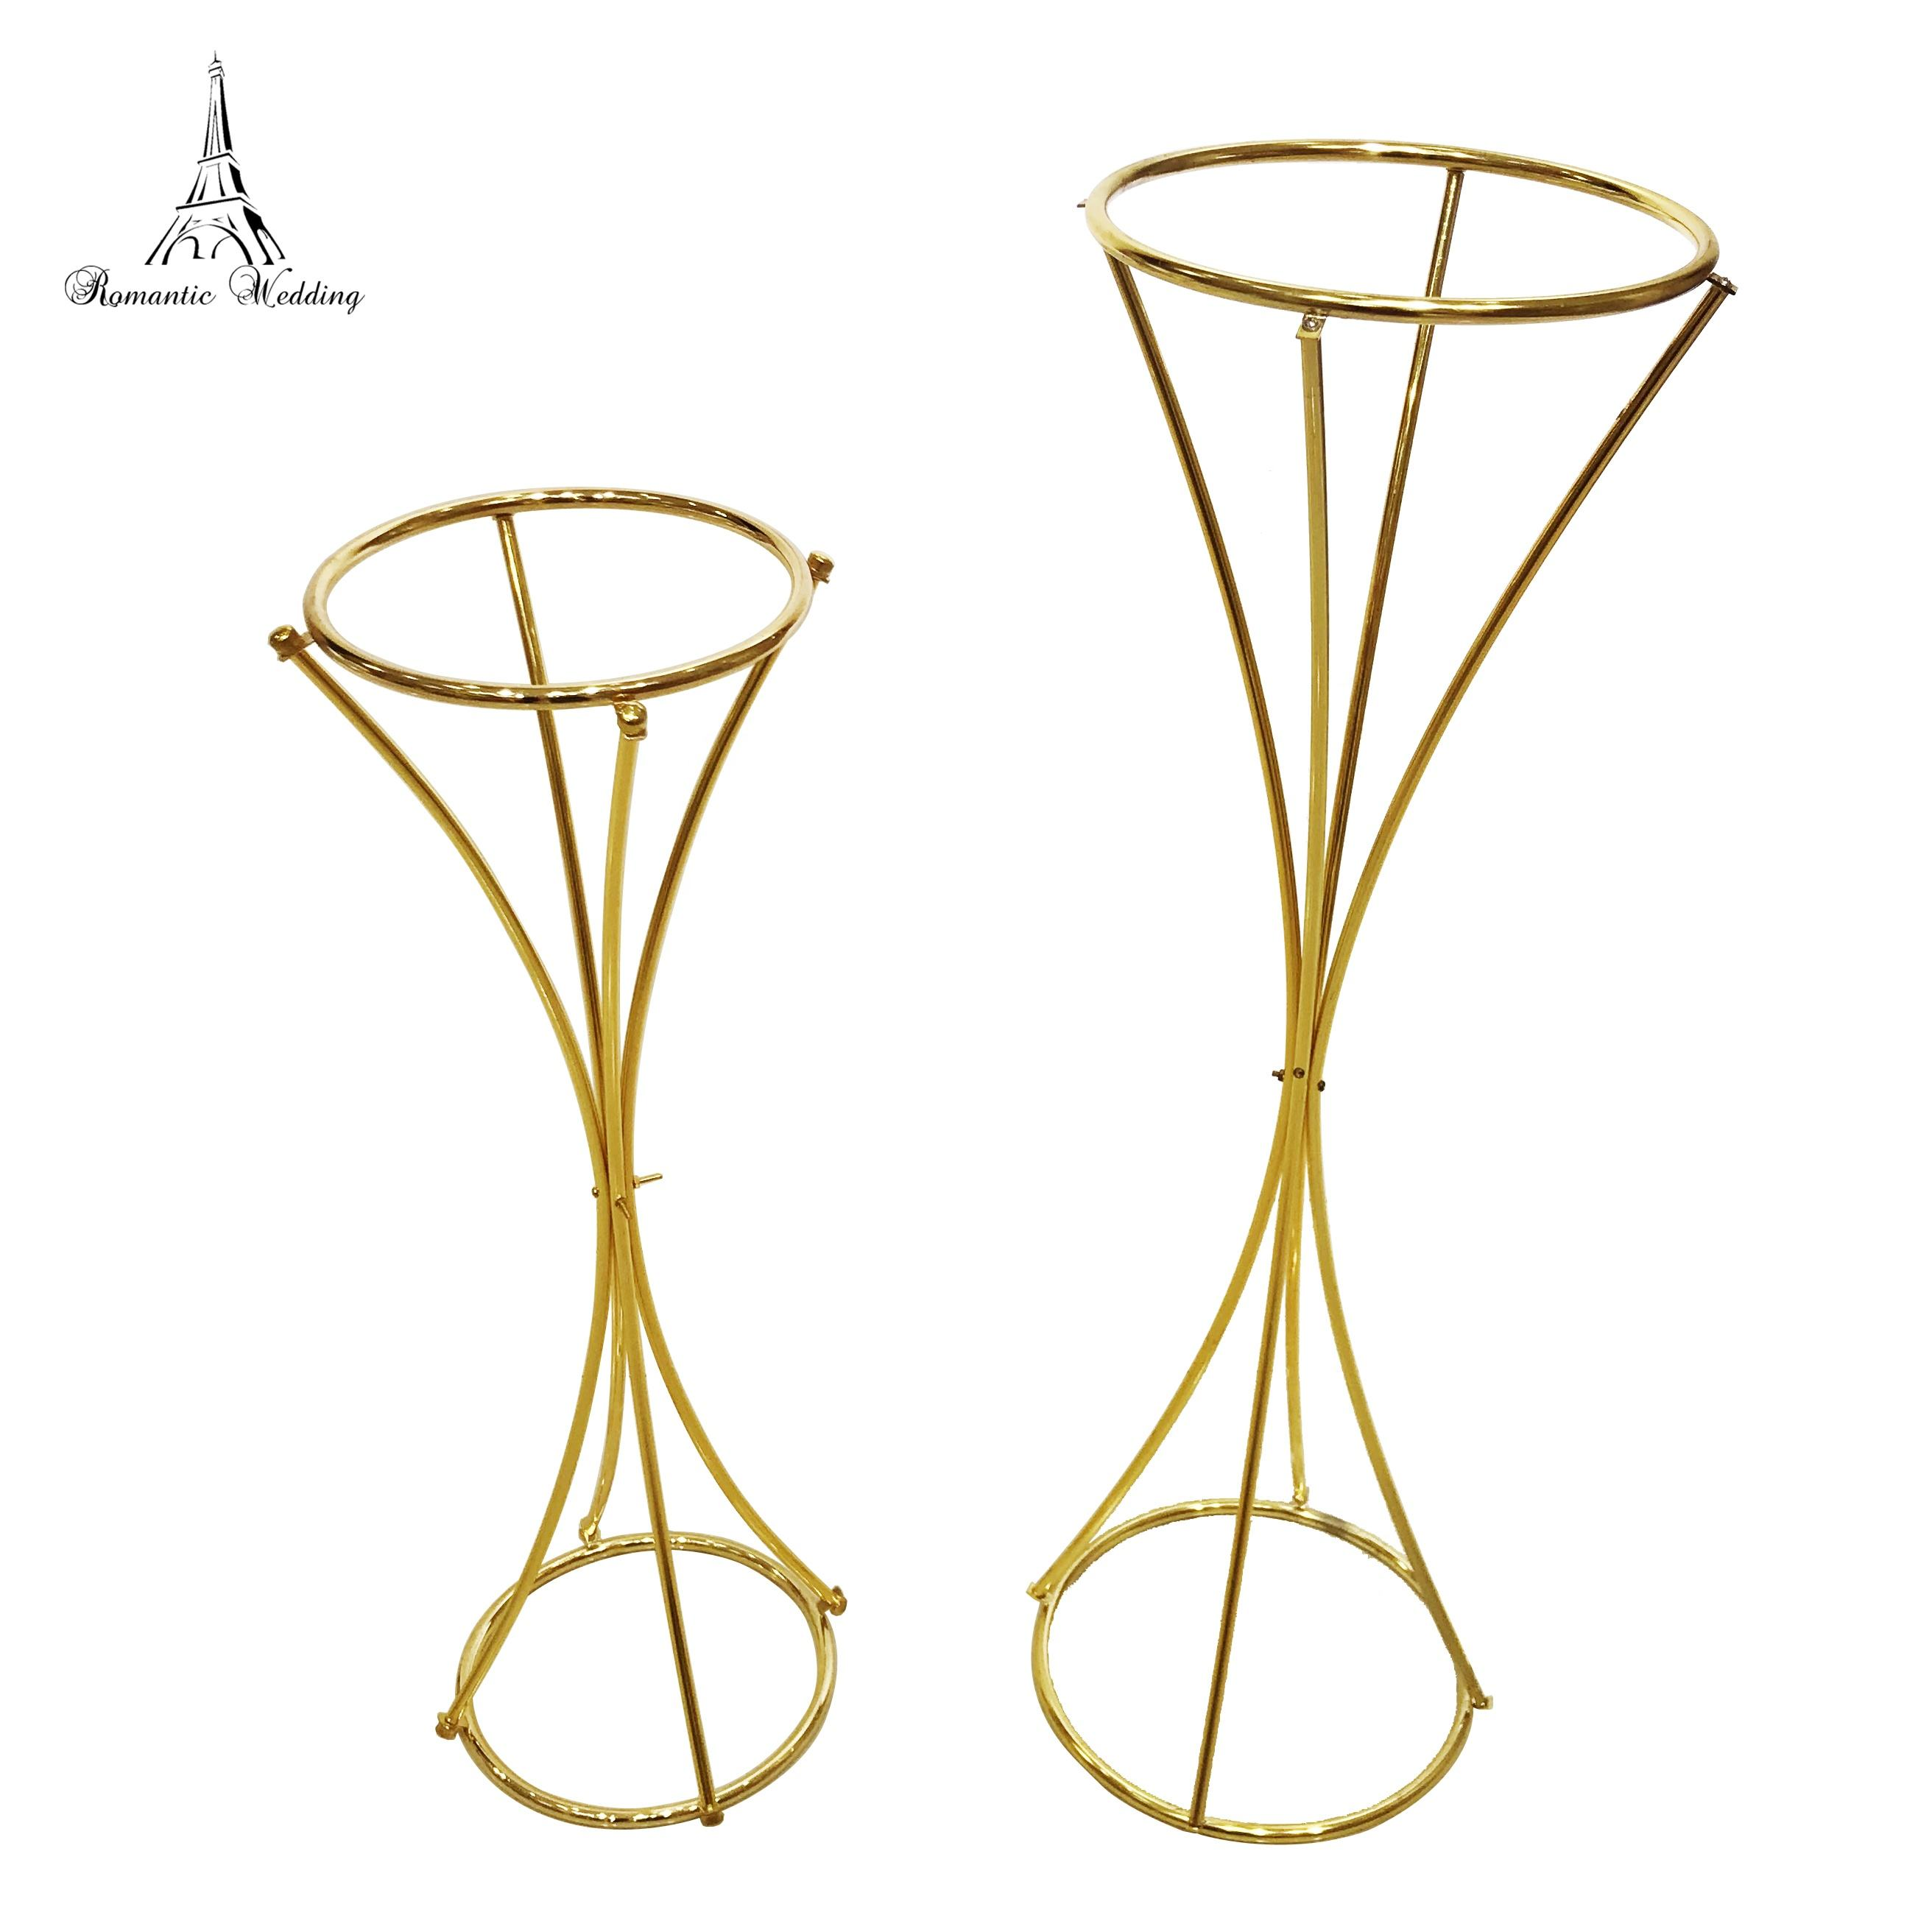 10PCS/lot Gold Metal Flower Stand Special style wedding table centerpiece for Wedding Party Event Centerpieces